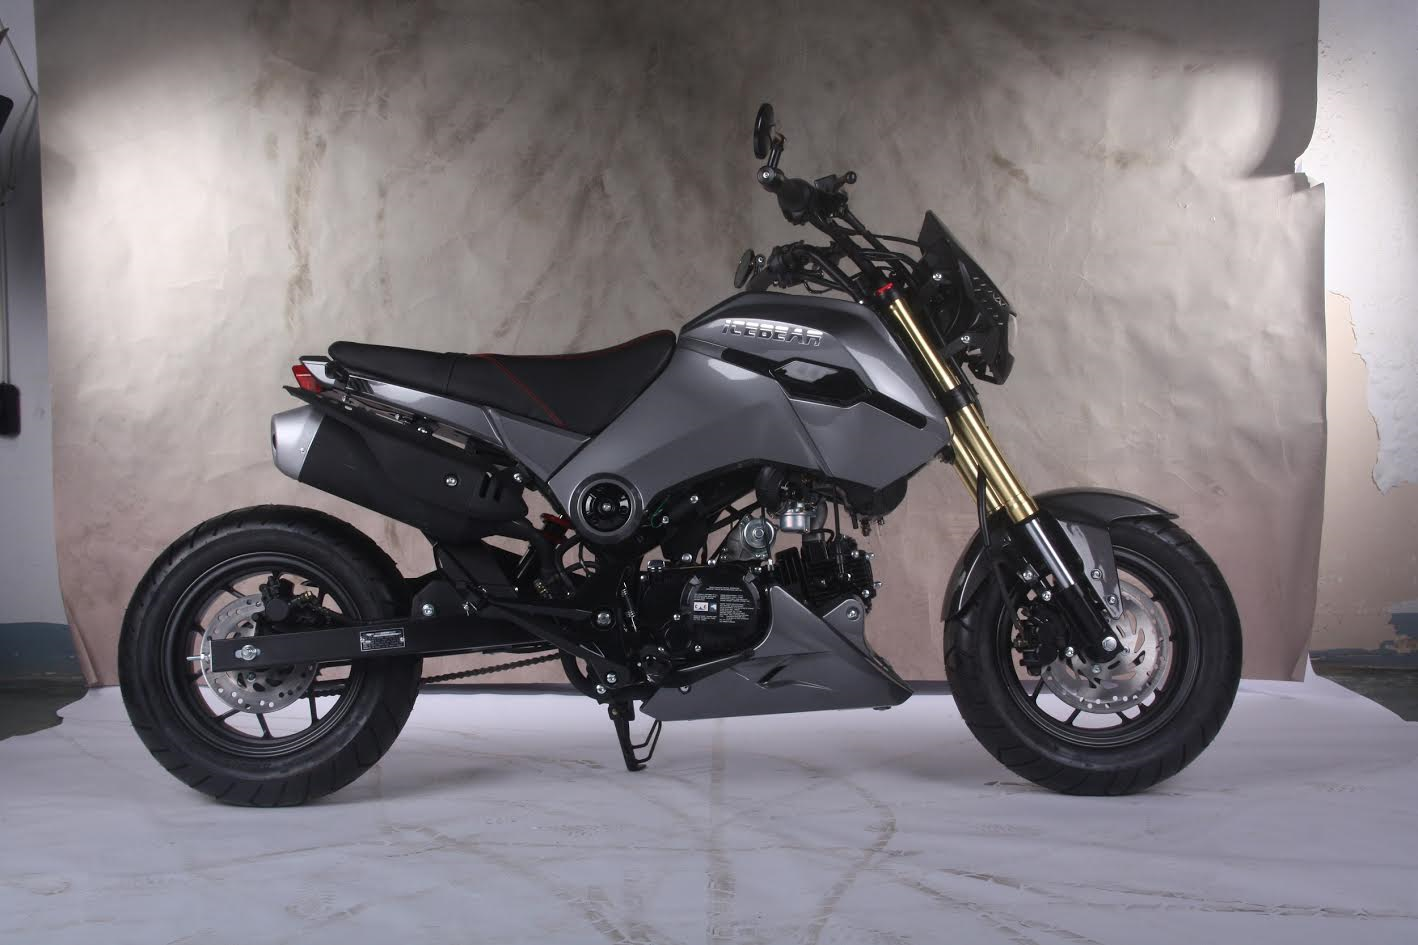 125cc Atv For Sale >> Buy IceBear PMZ125- 1 125cc Fuerza Motorcycle in USA